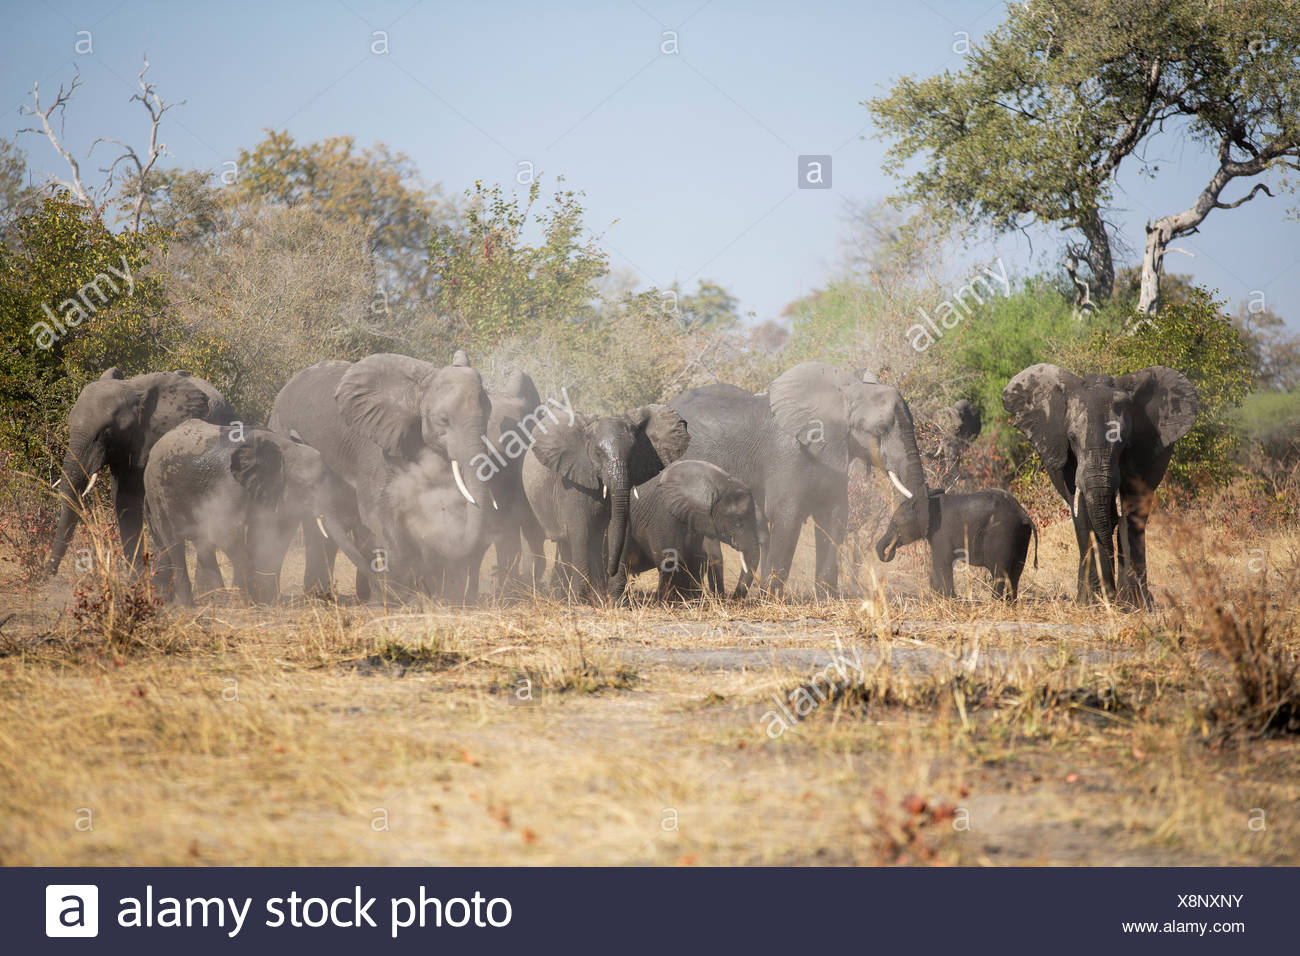 African elephants (Loxodonta africana) herd stirring up the dust Caprivi Region, Namibia, Africa - Stock Image